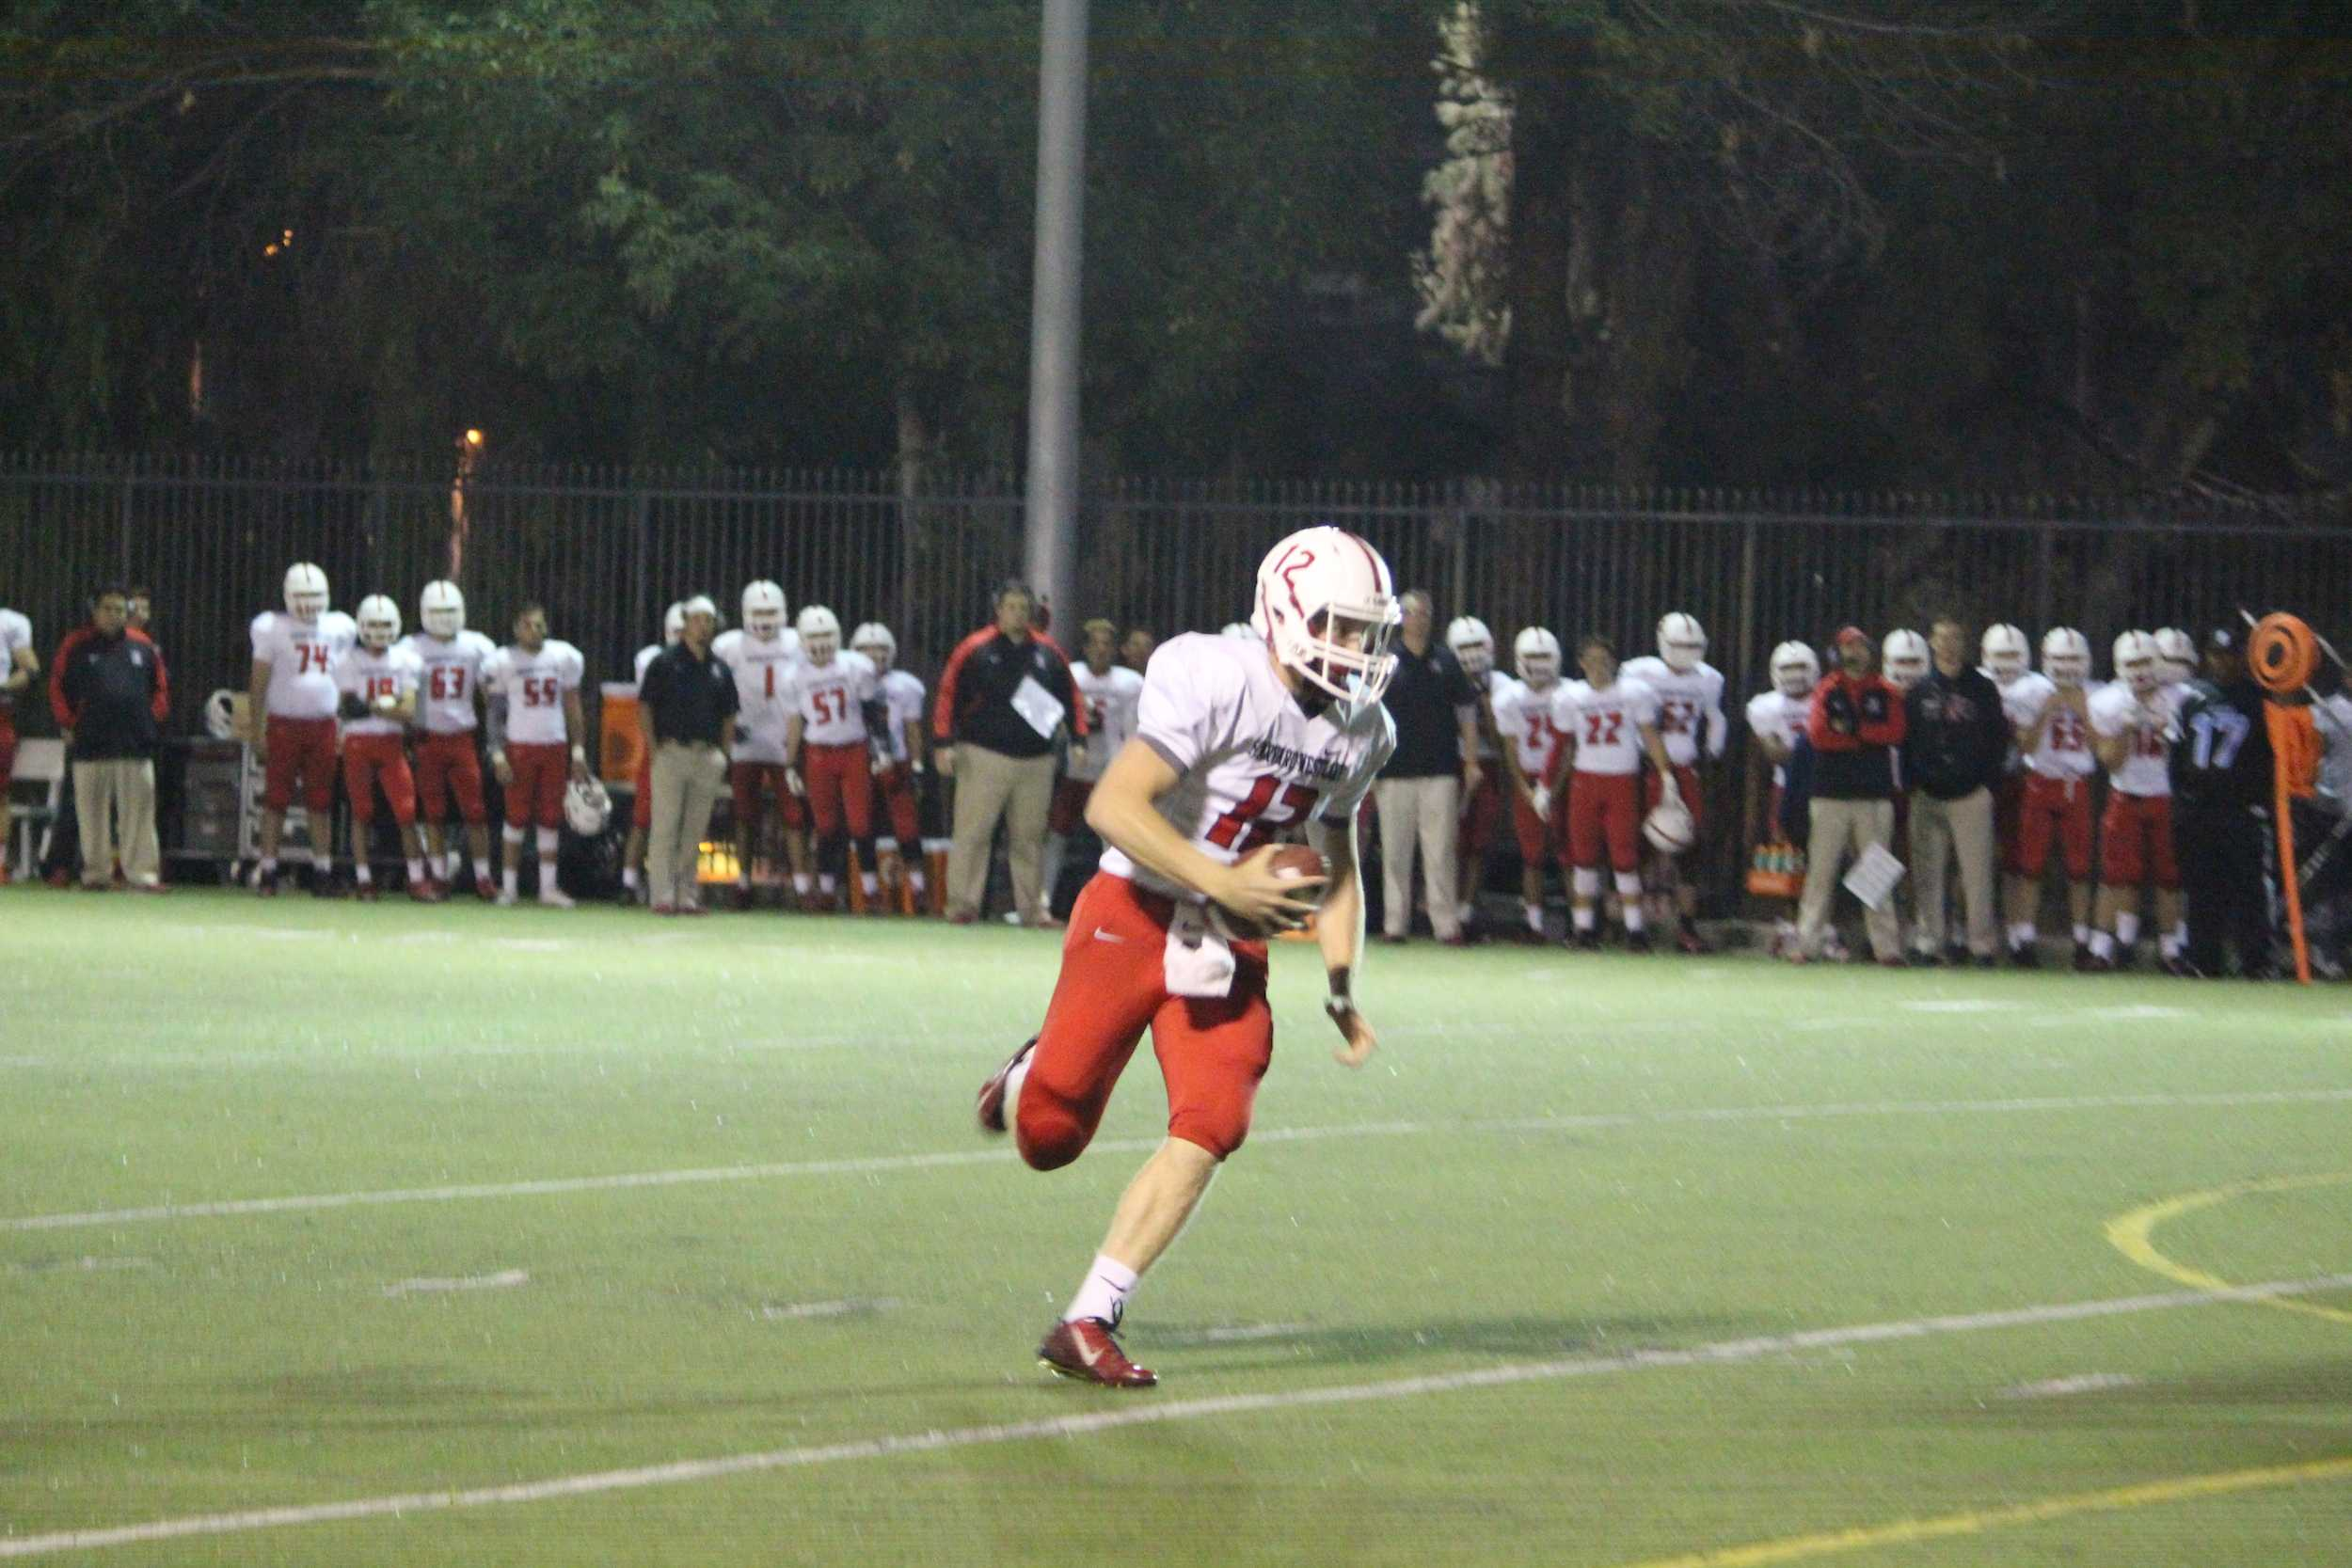 Quarterback Noah Rothman '16 scampers for an eight-yard touchdown run during the third quarter.